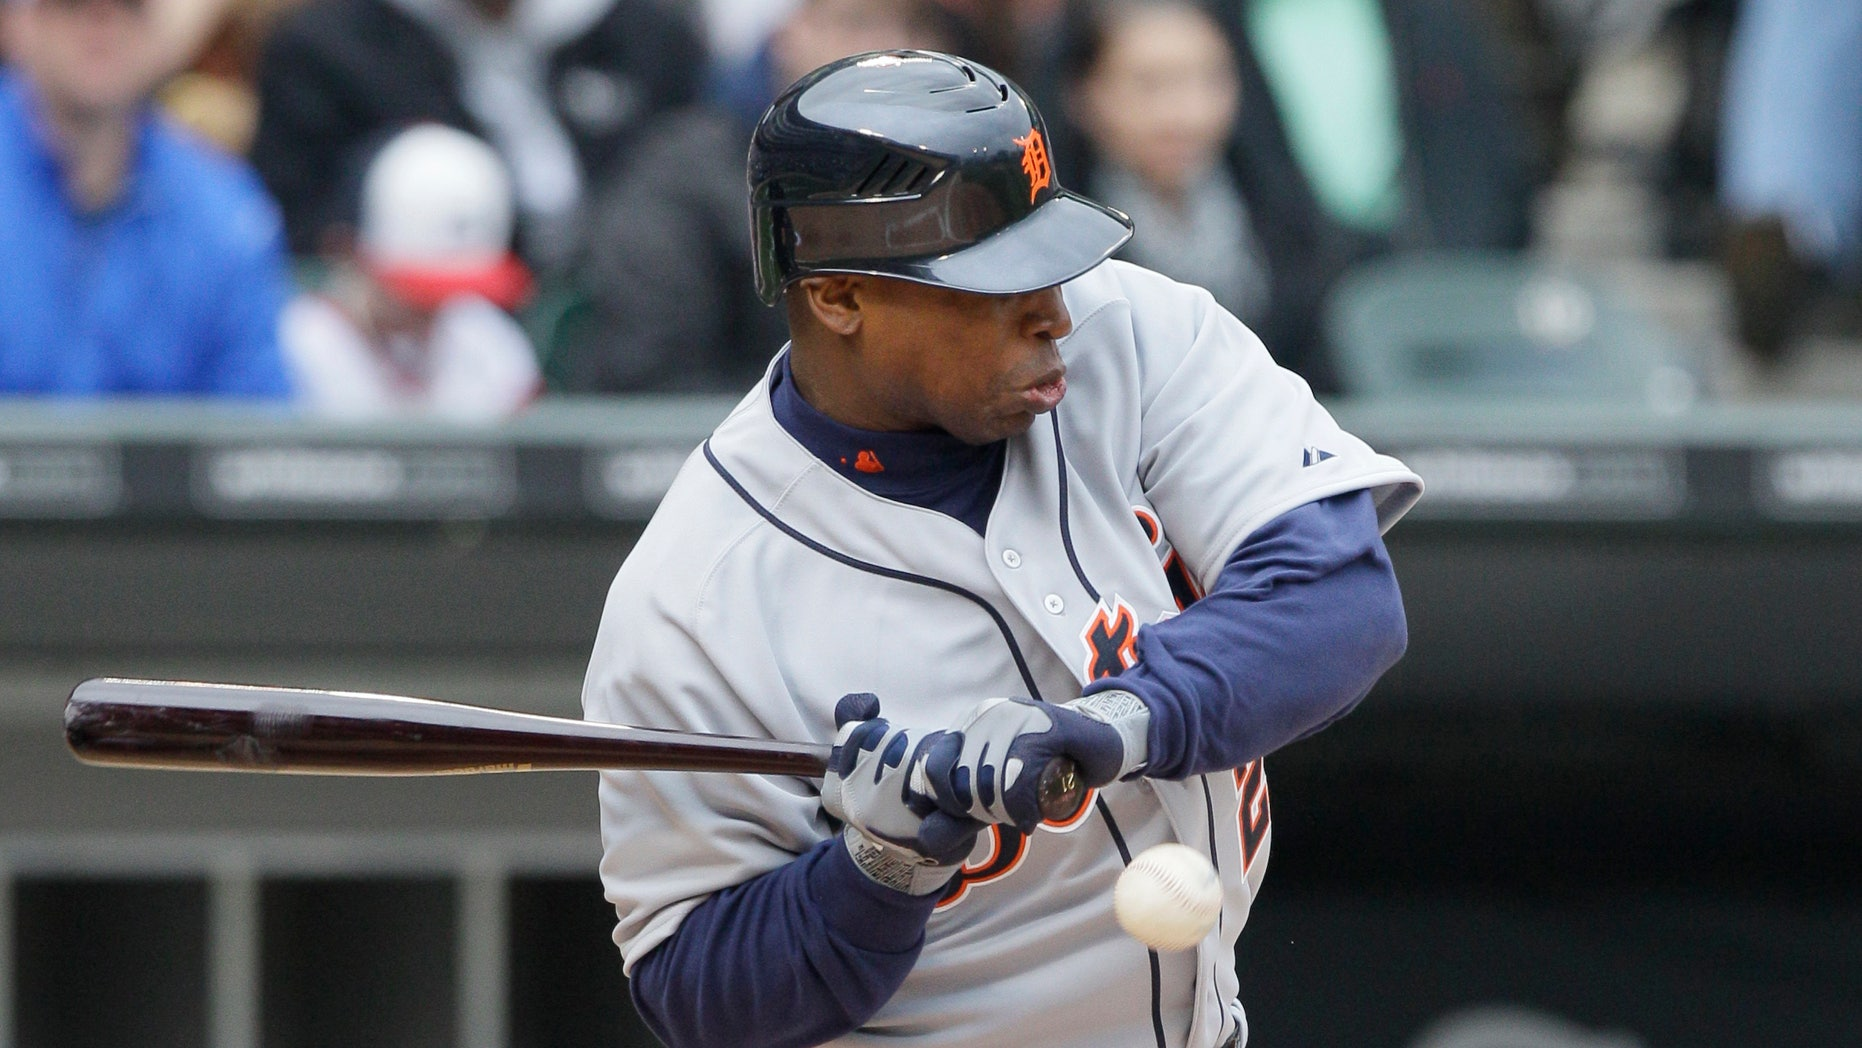 April 14, 2012: Detroit Tigers' Delmon Young is hit by a pitch from Chicago White Sox starter Gavin Floyd during the second inning of an baseball game in Chicago. (AP)